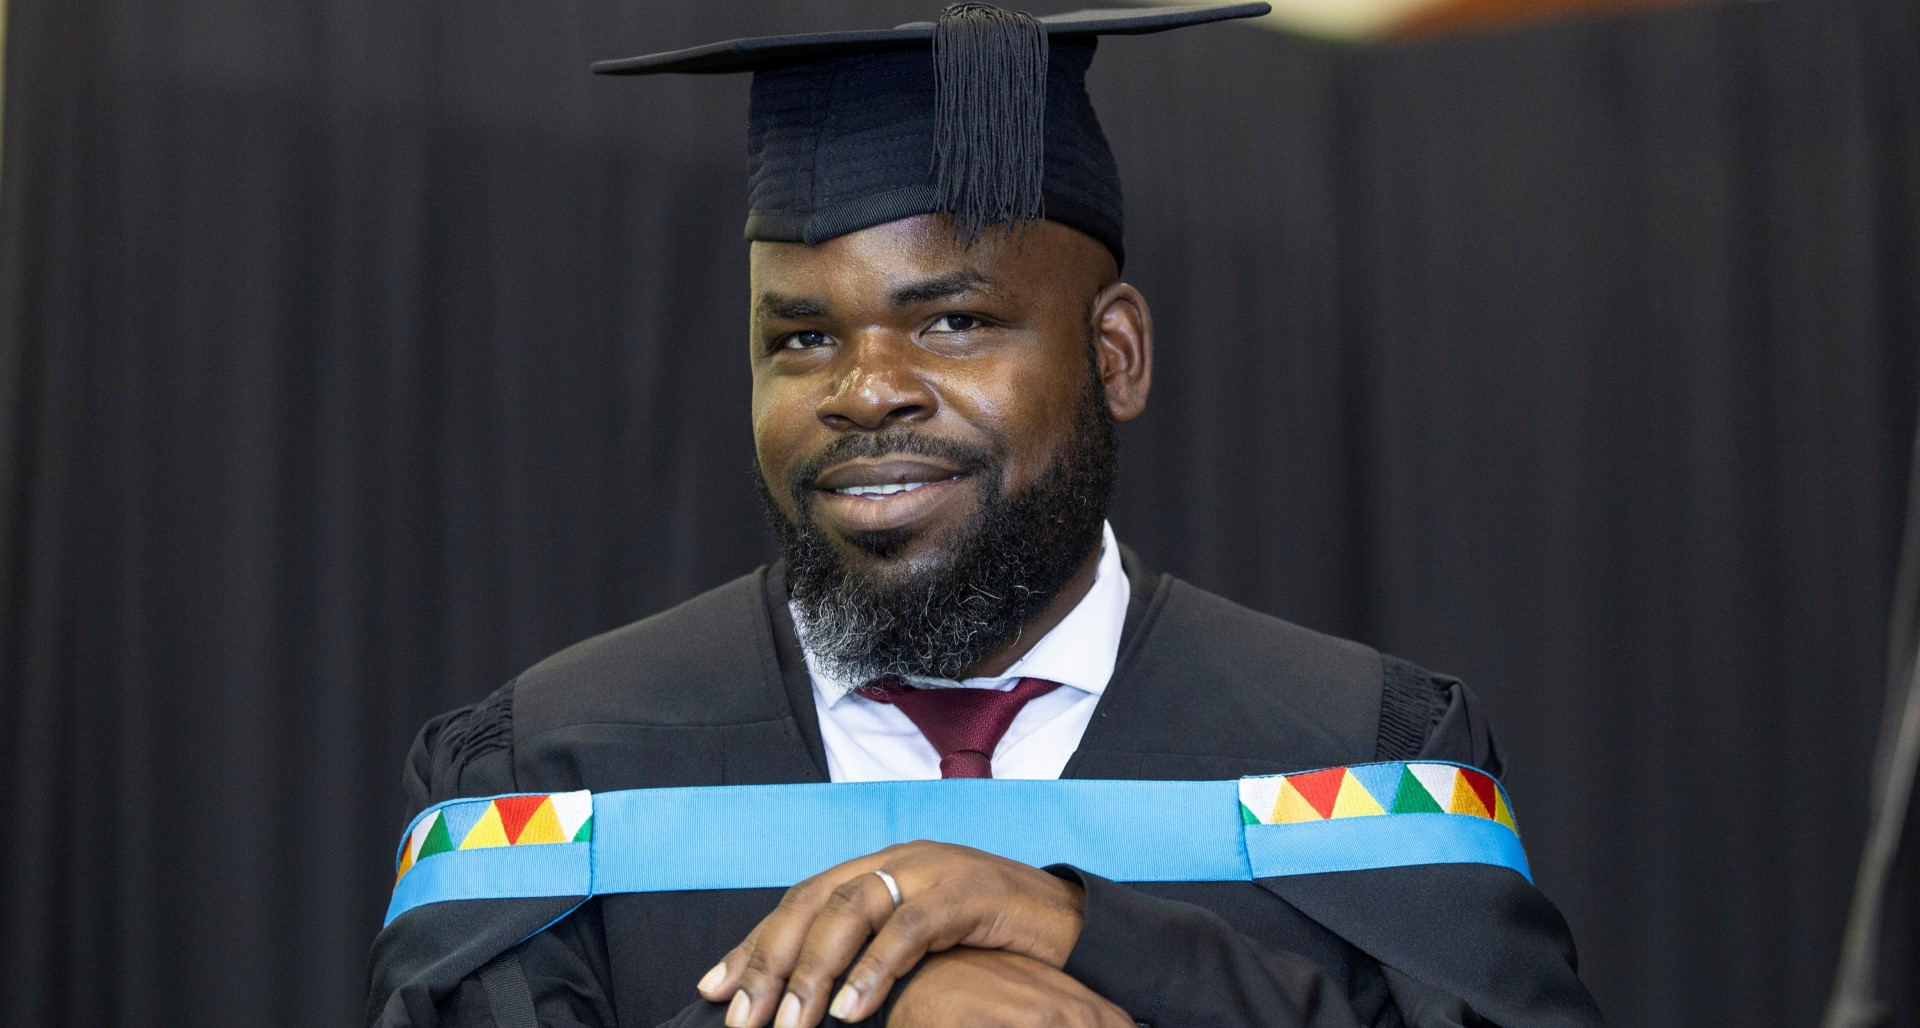 Mr McDonald Mnelemba graduates summa cum laude with his Master's in Education.